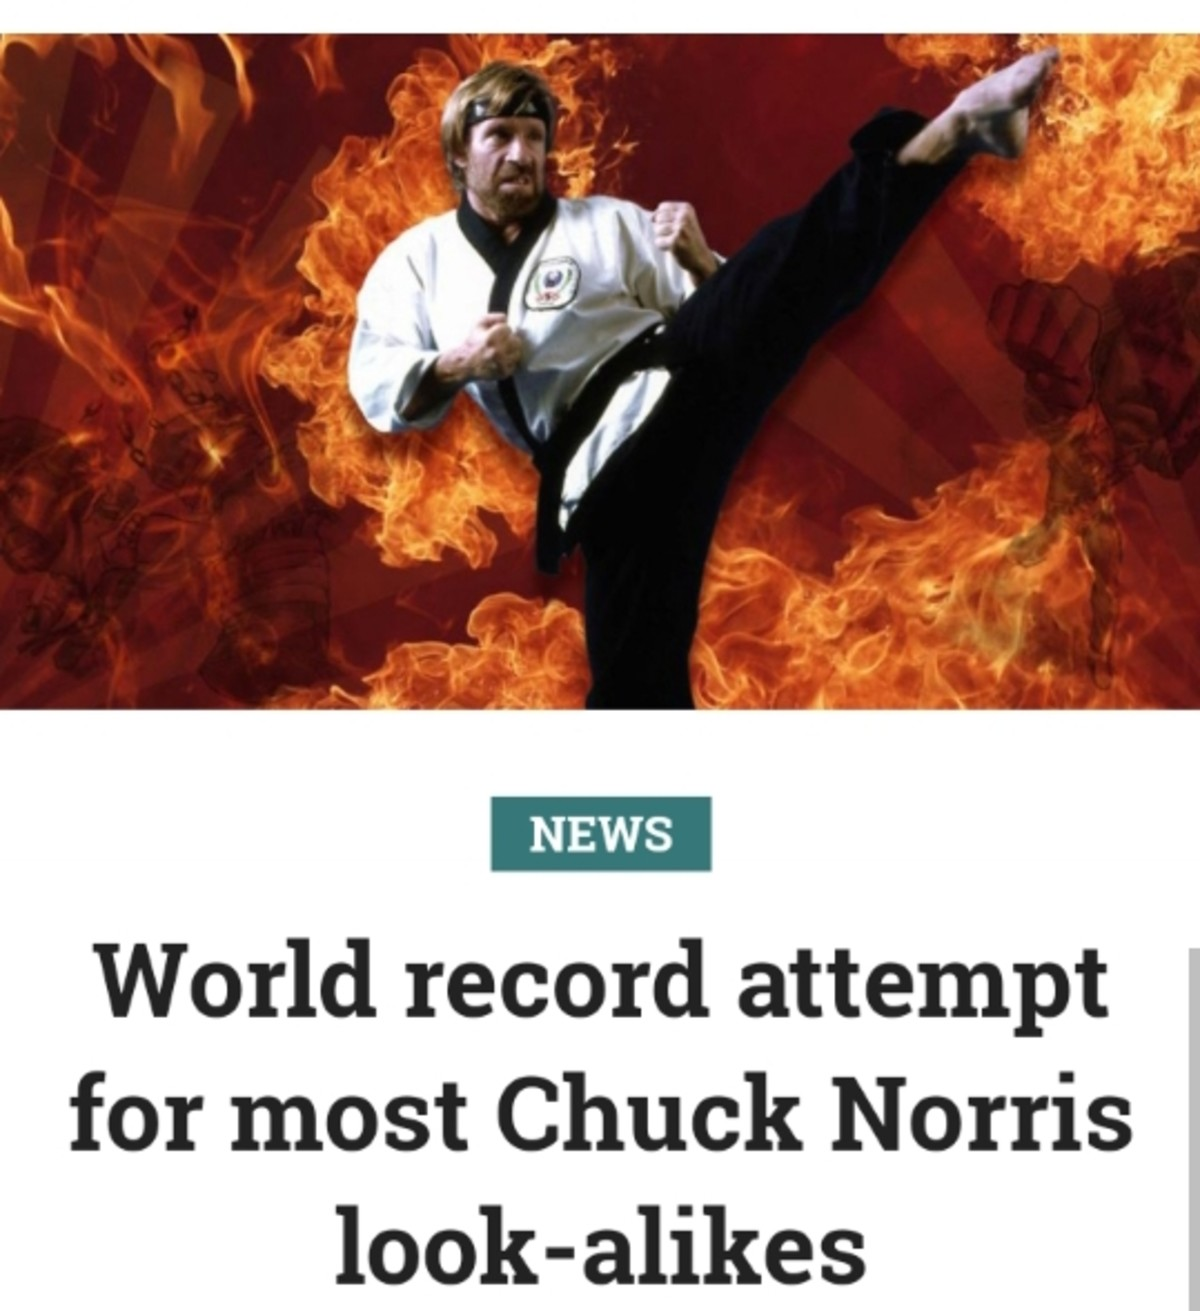 Chuck Norris Attempt at World Record. Chuck Norris is hosting 5k Run in which participants are dressed like him in attempt at world record join list: Texas (166